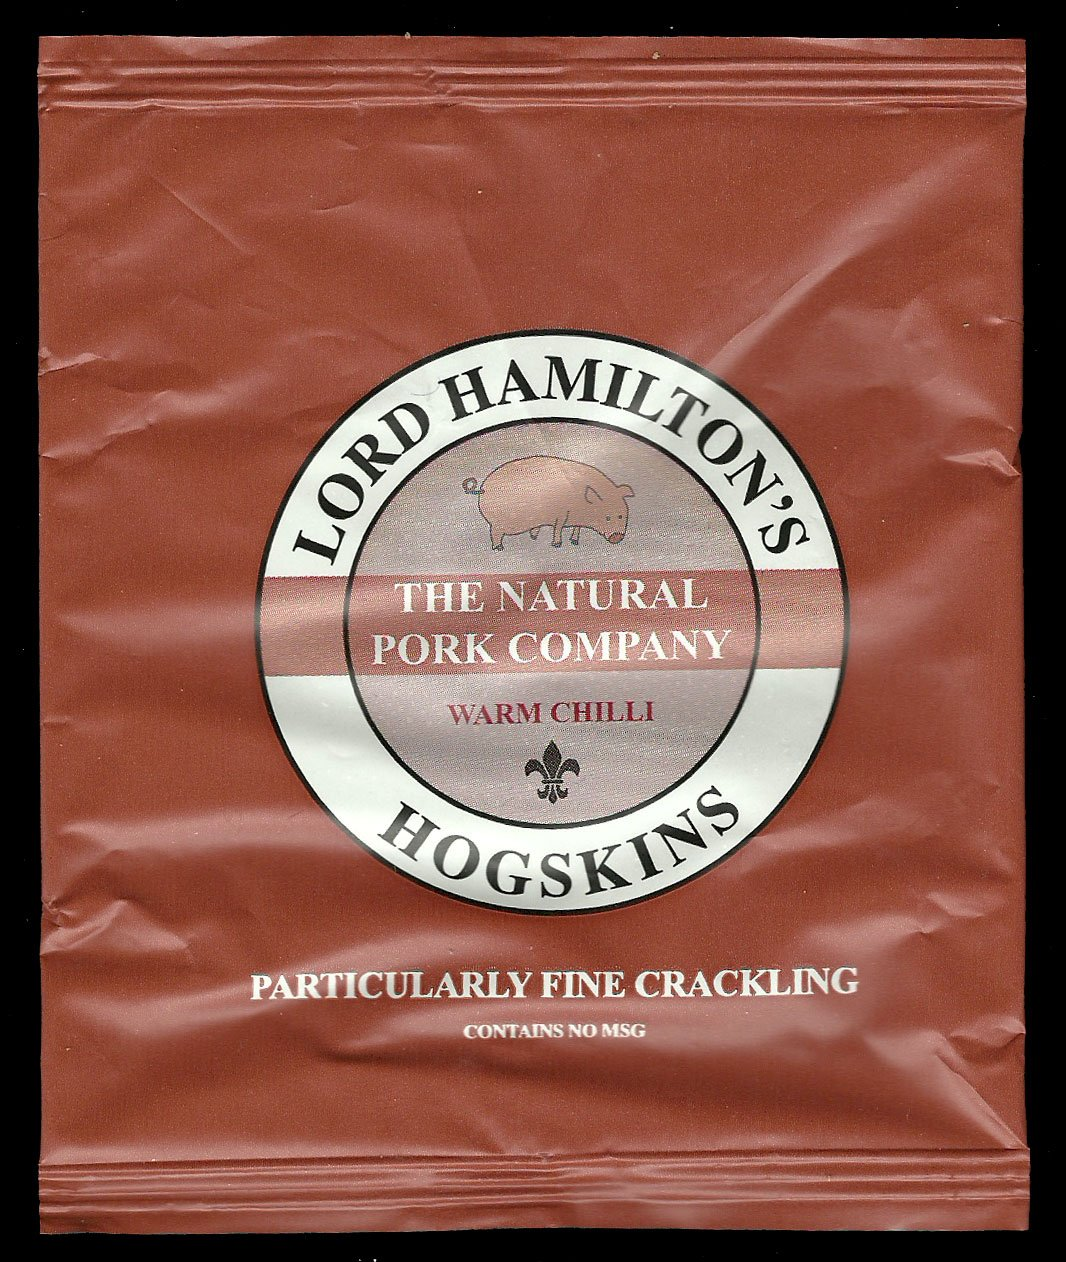 Lord Hamiltons Hogskins Warm Chilli Particularly Fine Crackling Review2 - Lord Hamiltons Hogskins, Warm Chilli, Particularly Fine Crackling Review